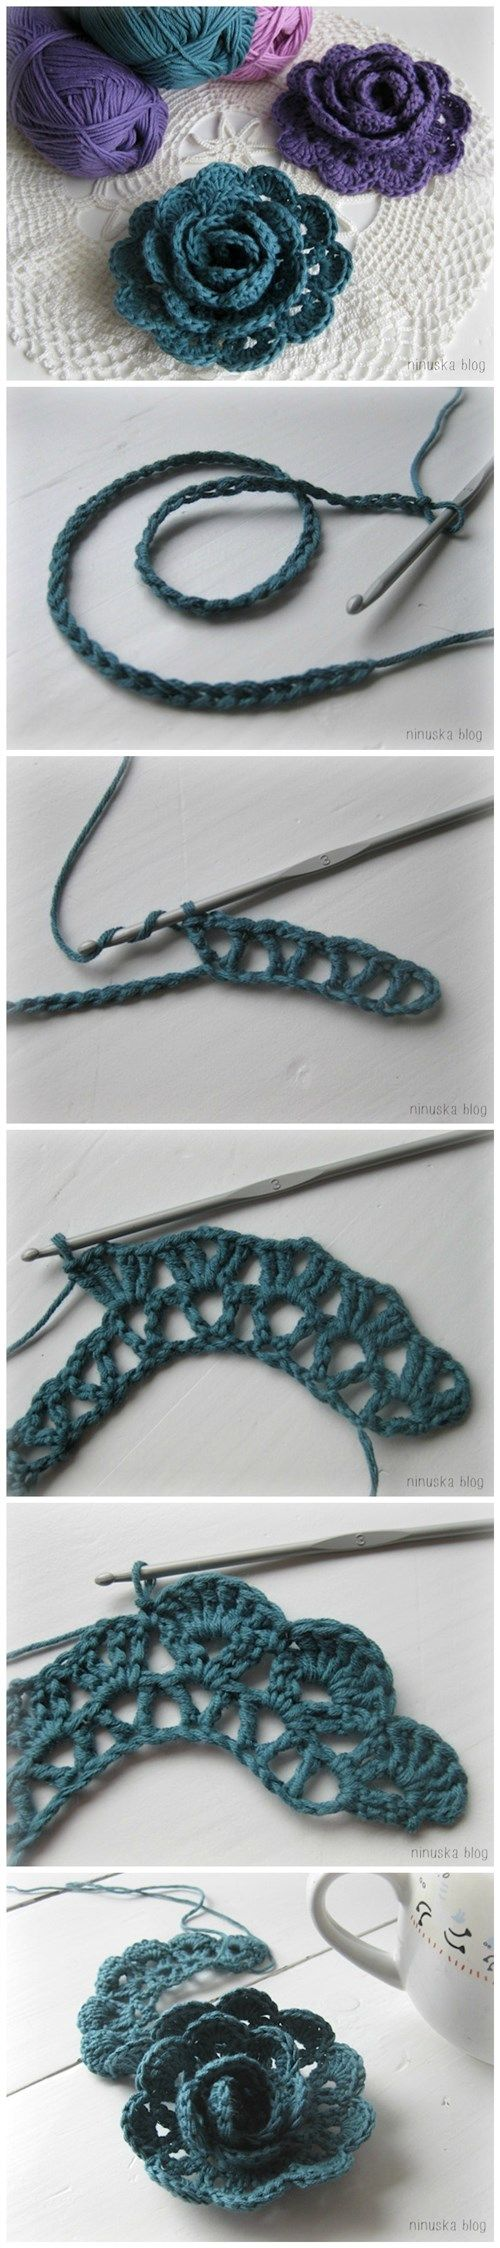 How to crochet lace ribbon rose flowers step by step diy tutorial how to crochet lace ribbon rose flowers step bankloansurffo Image collections